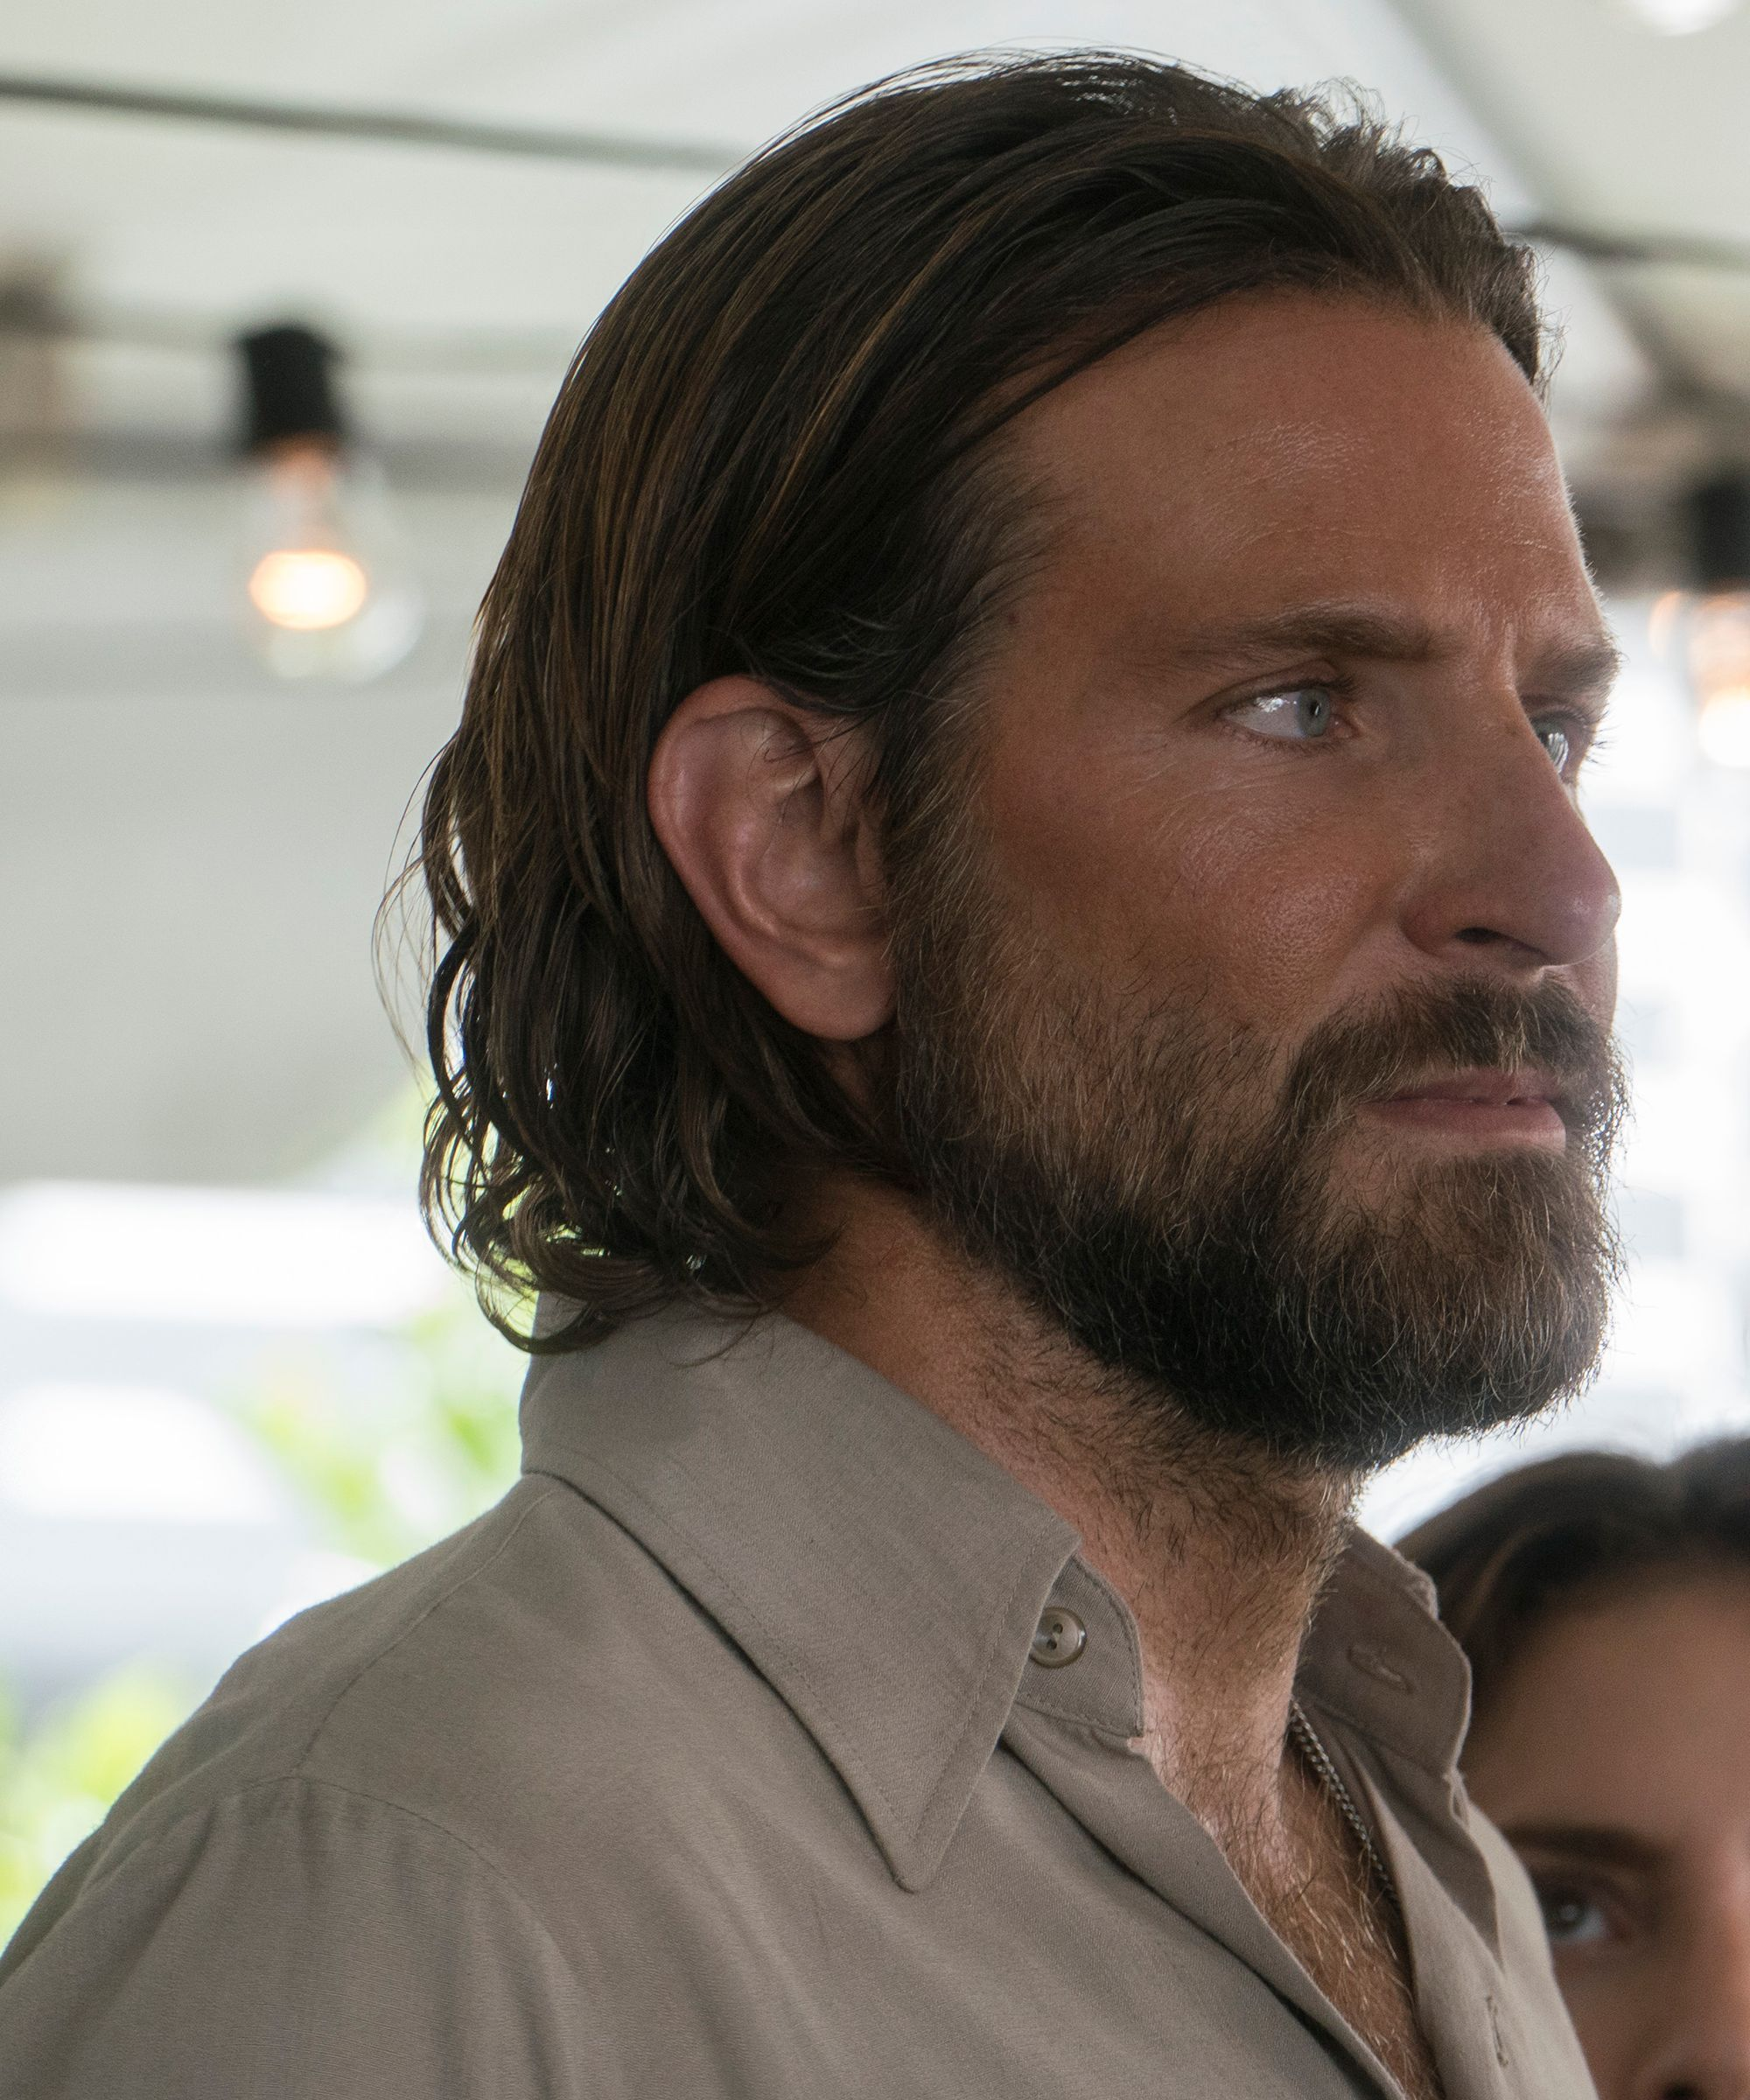 the meaning behind bradley cooper & lady gaga's hair in 'a